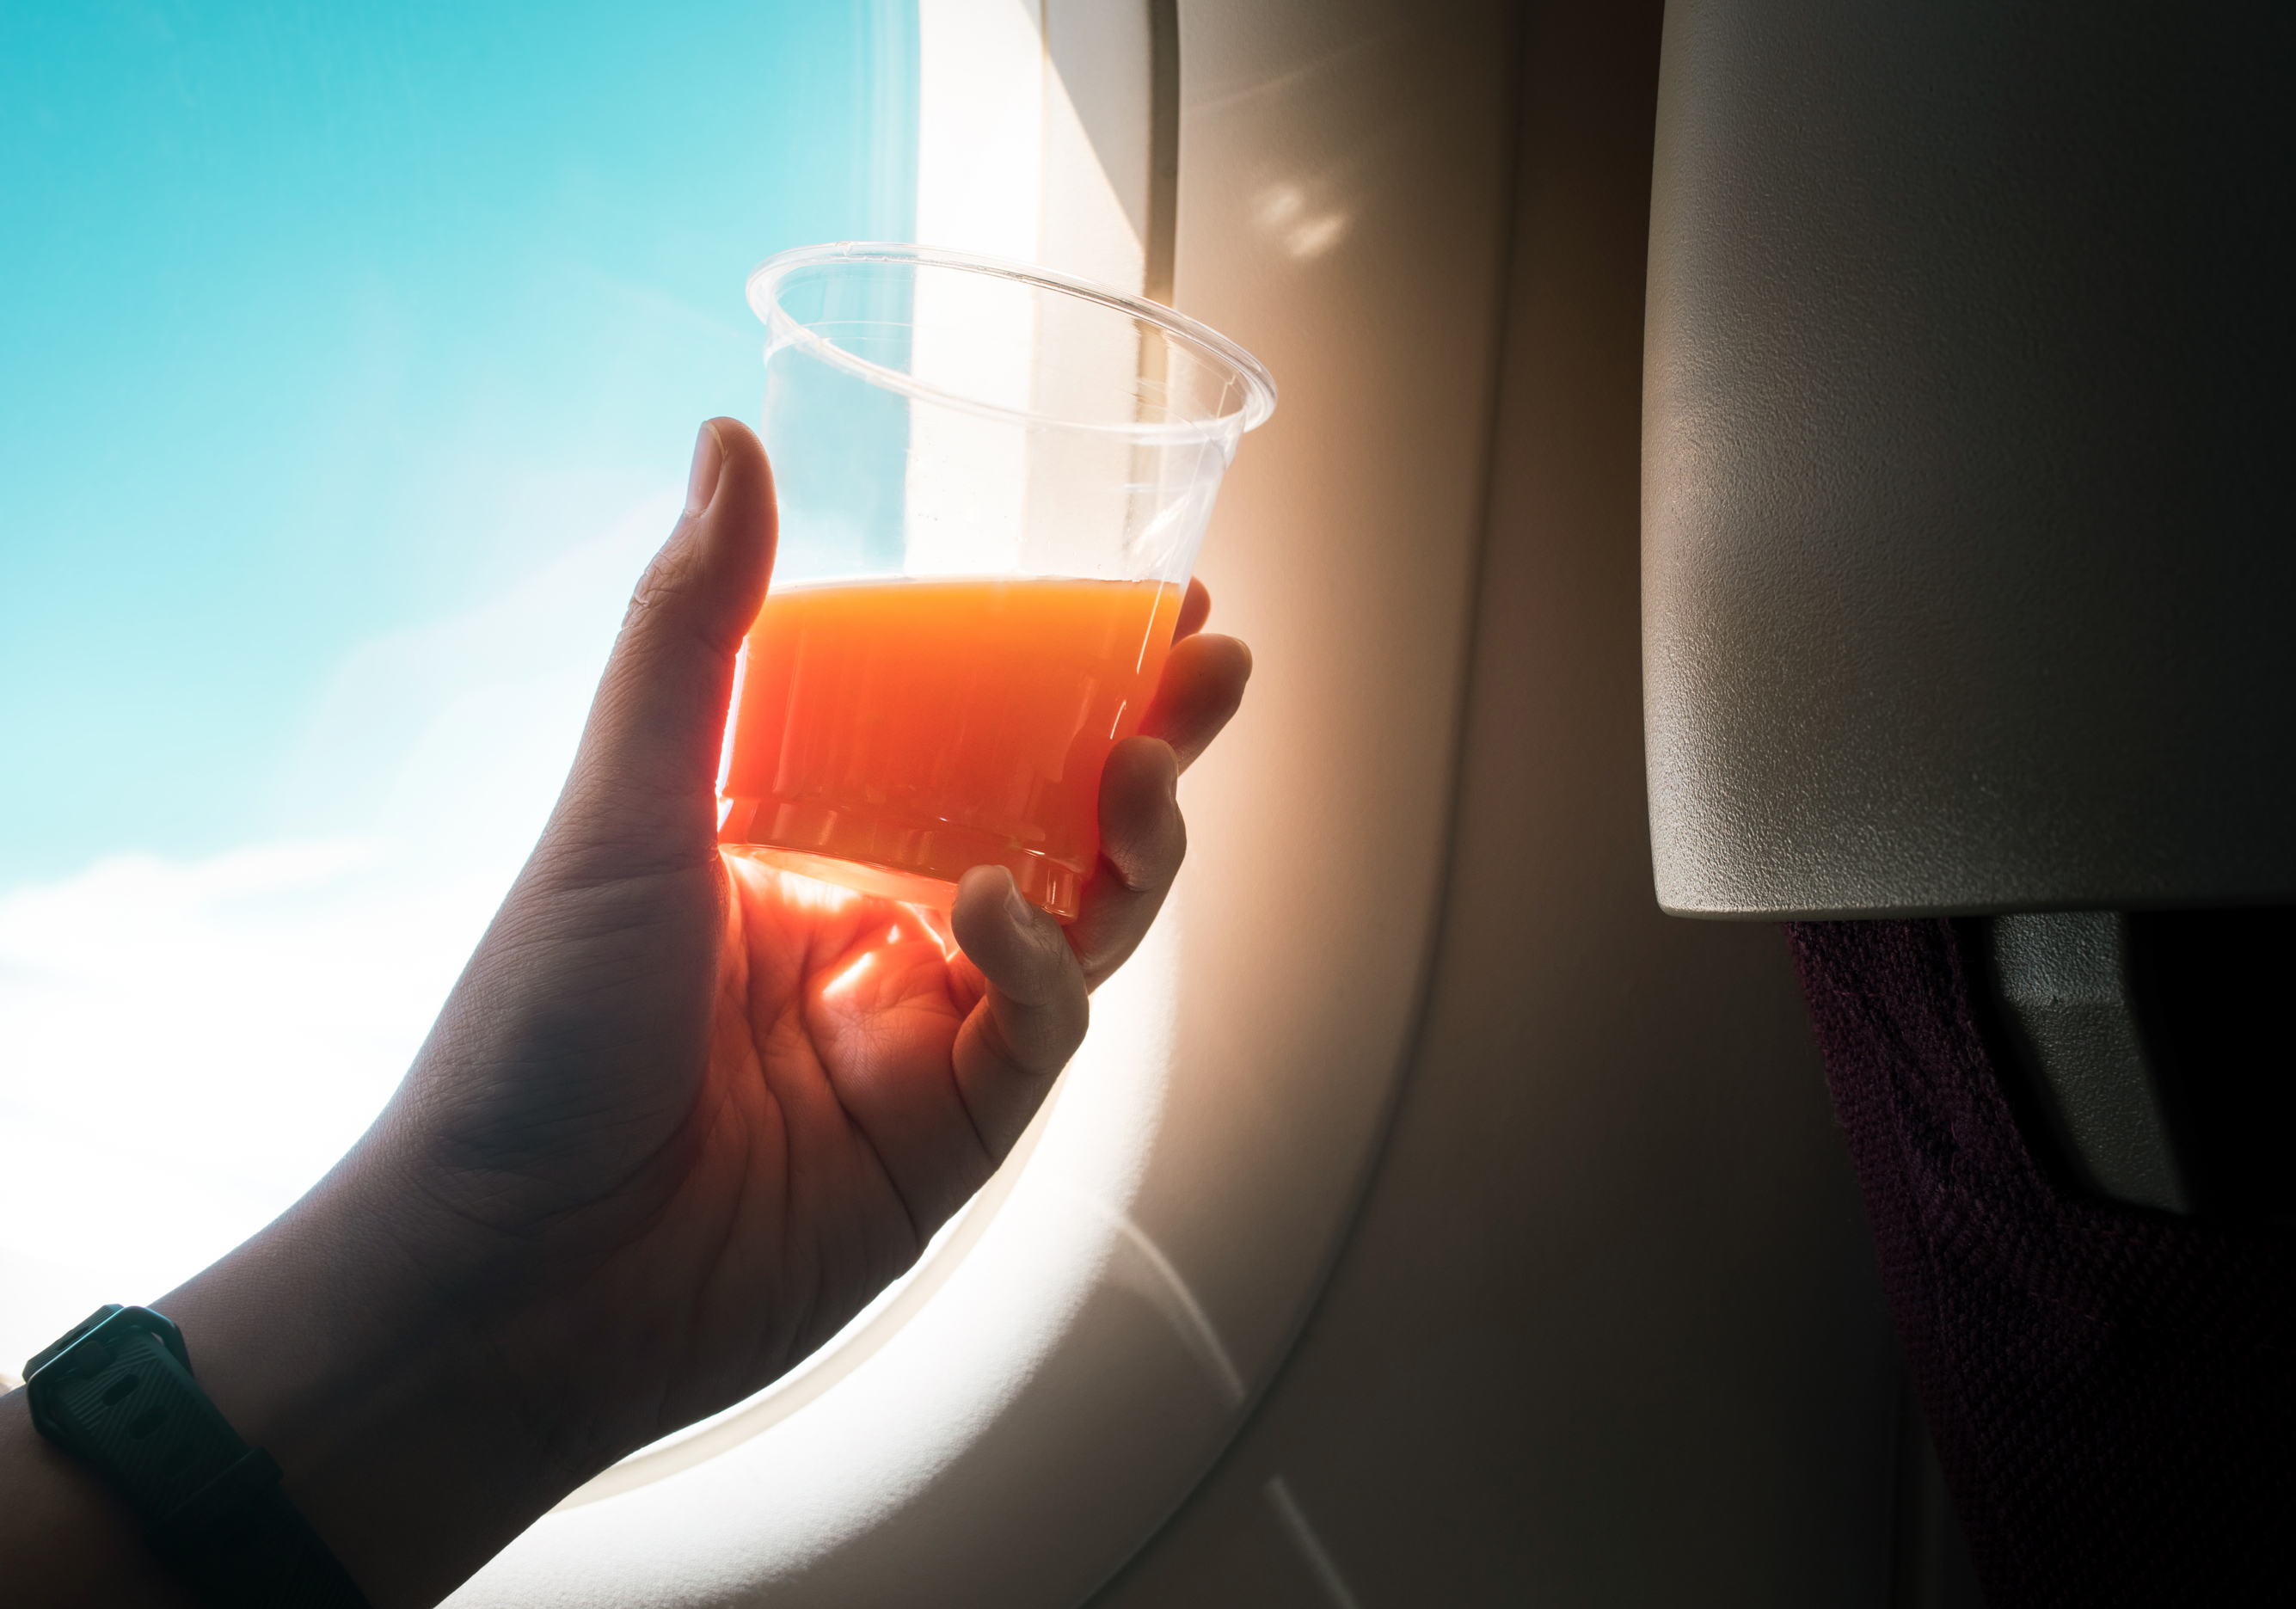 Drink-Plane-Window.jpg?mtime=20180710113828#asset:102425